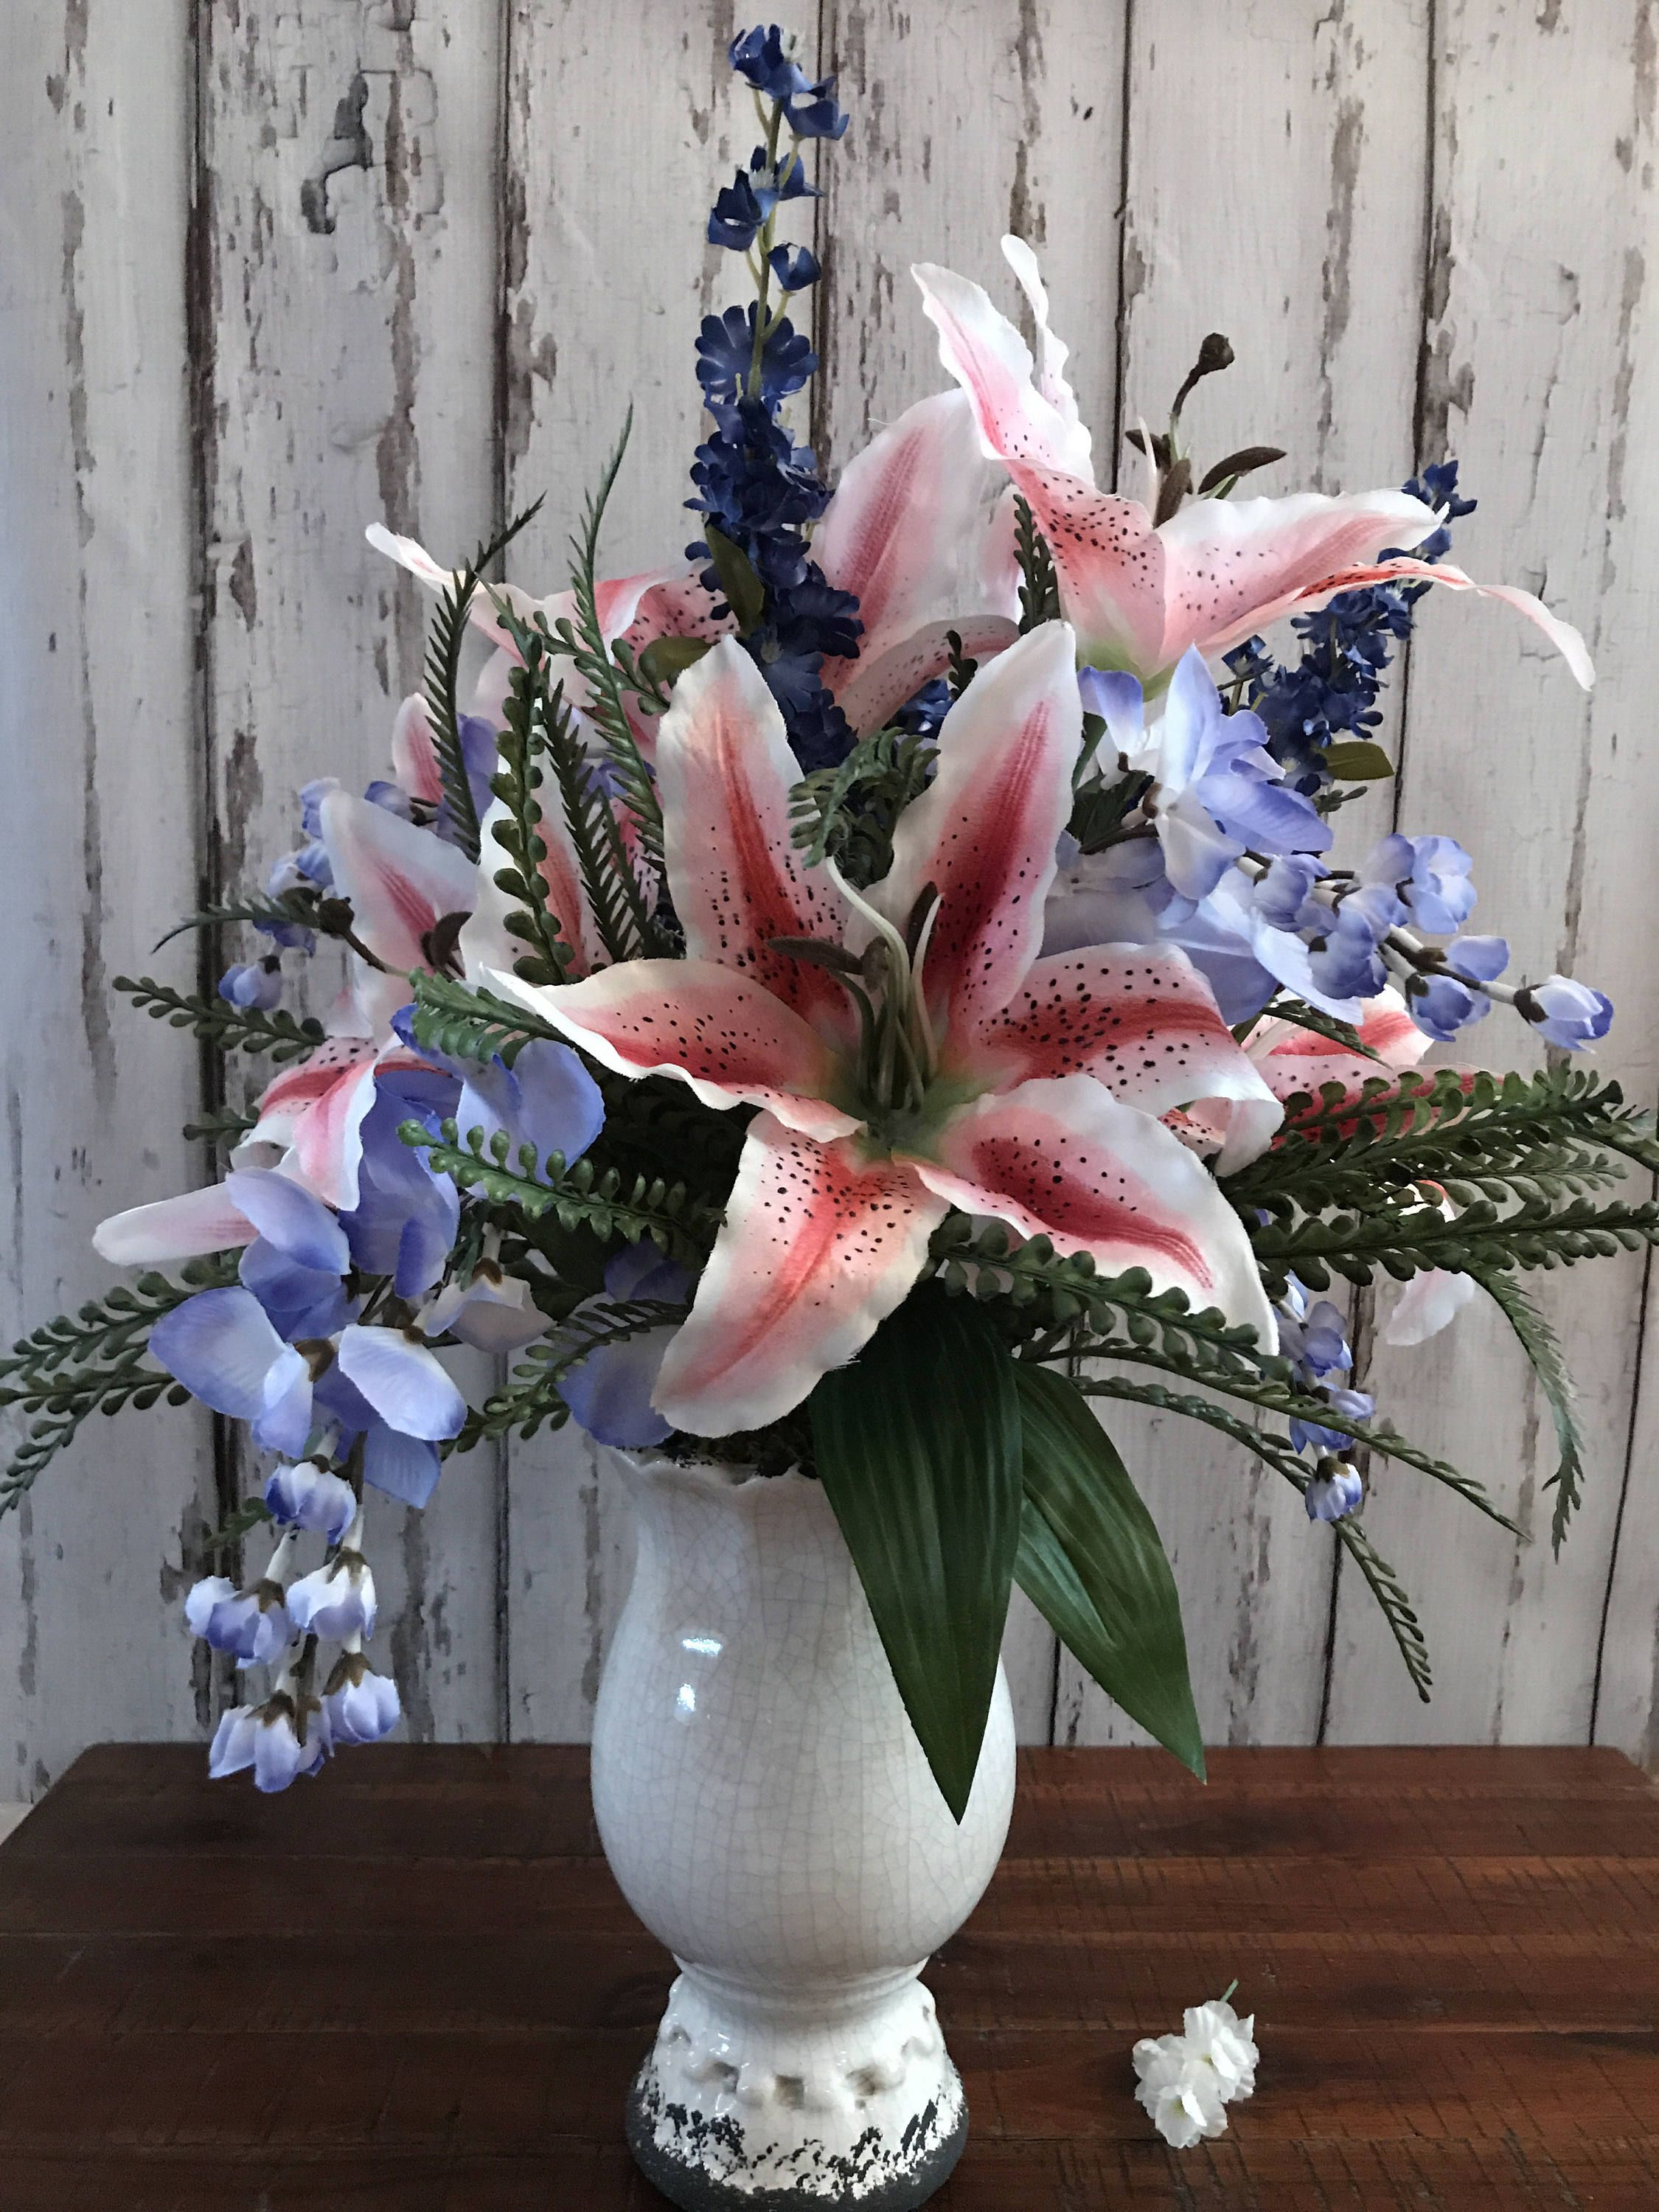 Oriental Lilies Are So Fine Joanna Gaines Of Fixer Upper I Agree